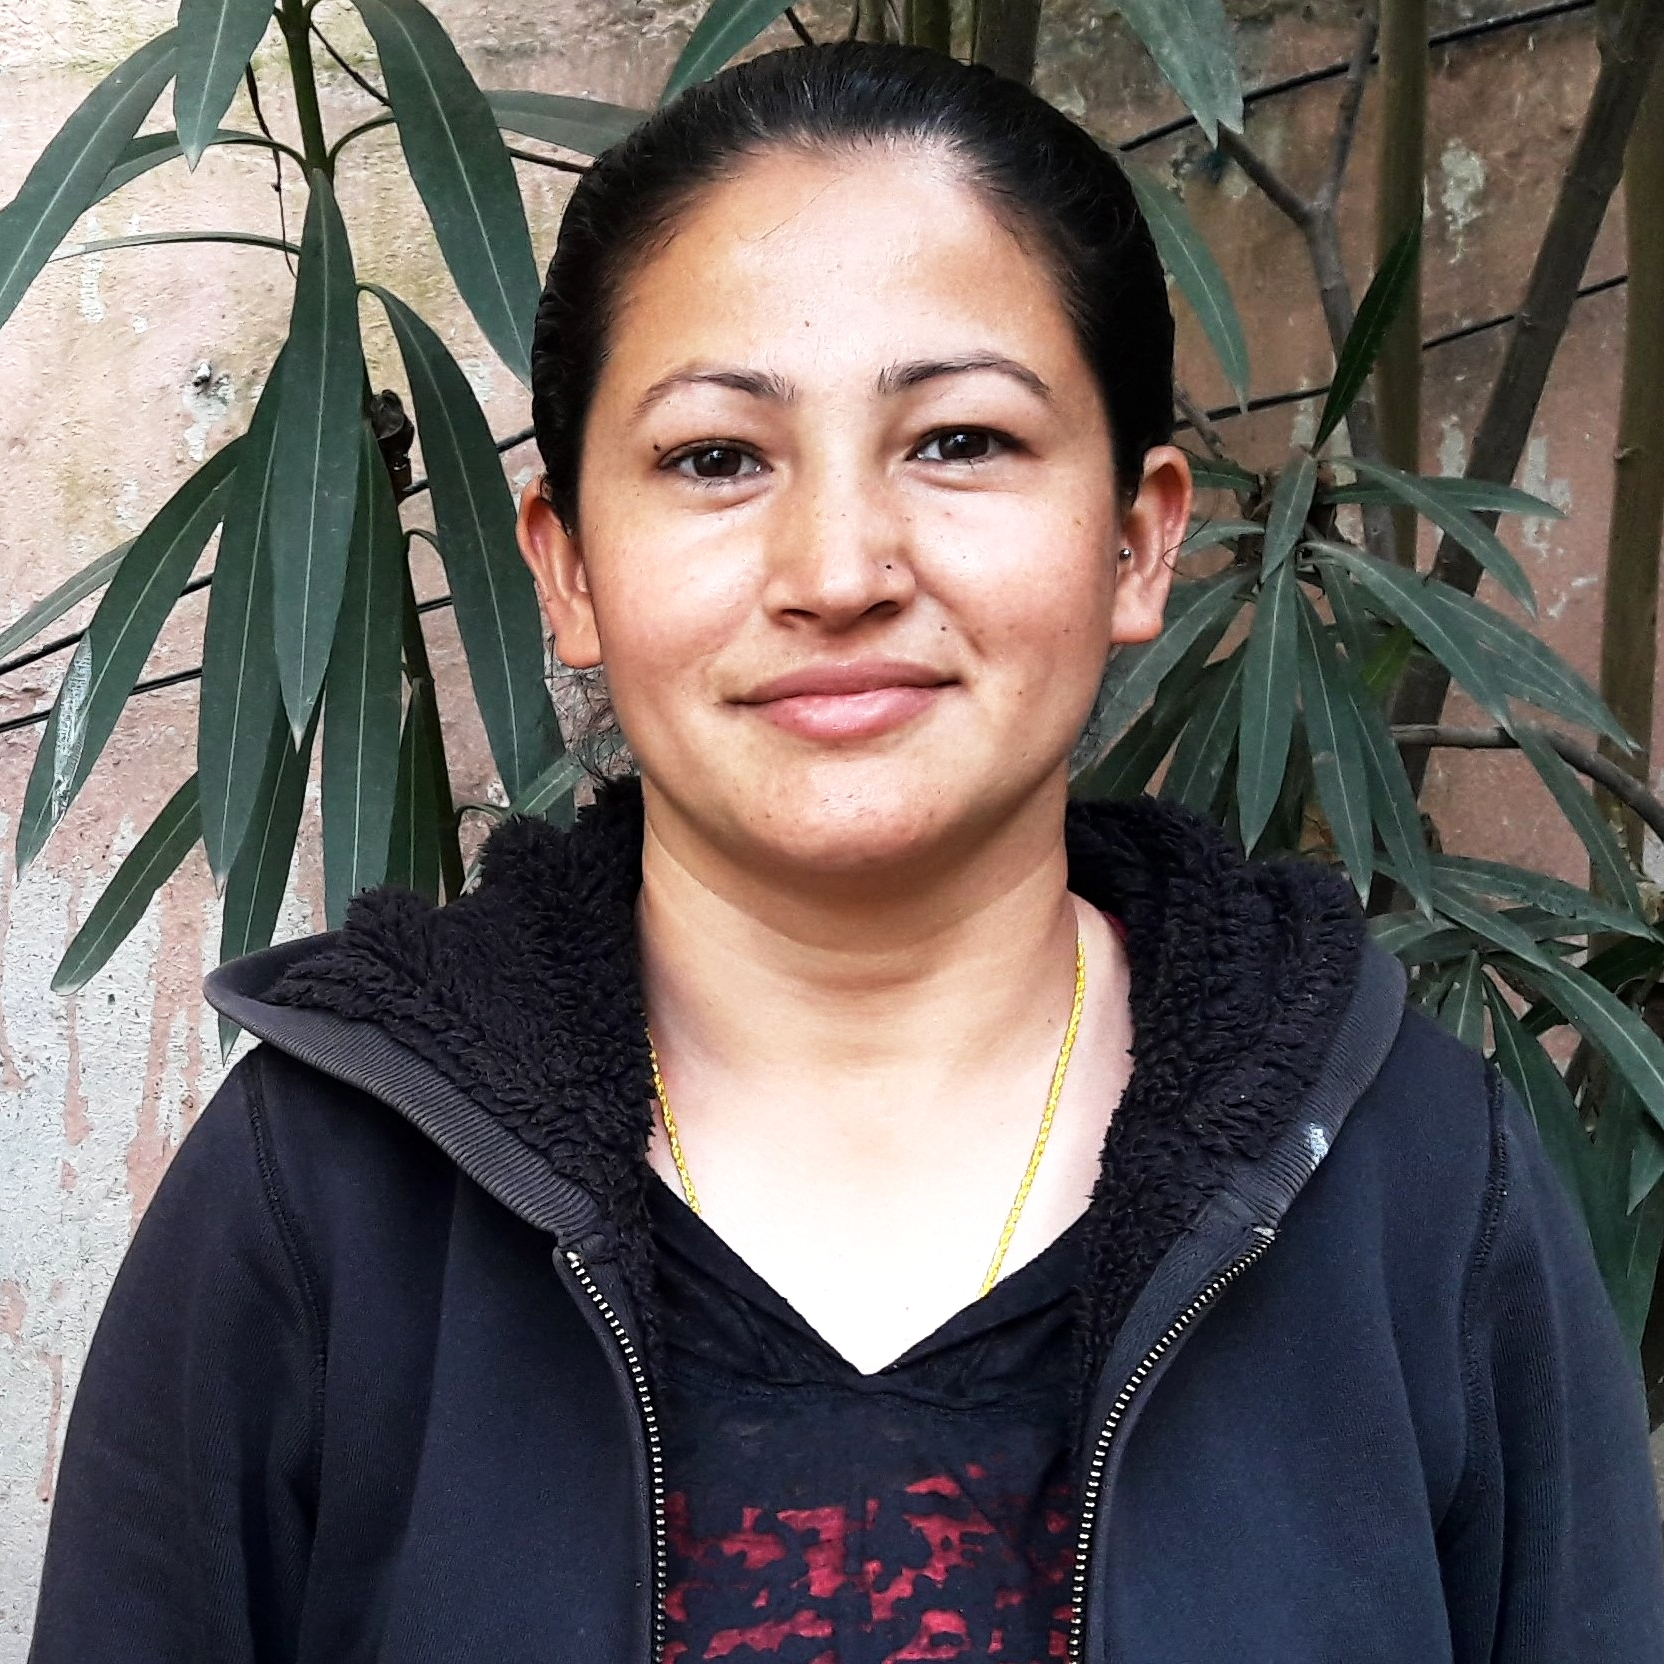 Miss. Sadikshya Rajeshwori Thapa    Founder Member    She was born in Kathmandu, Nepal. She has professionally worked as a teacher in various institutions for the past 8 years. Currently she is running a cafe which is also partly a social enterprise.